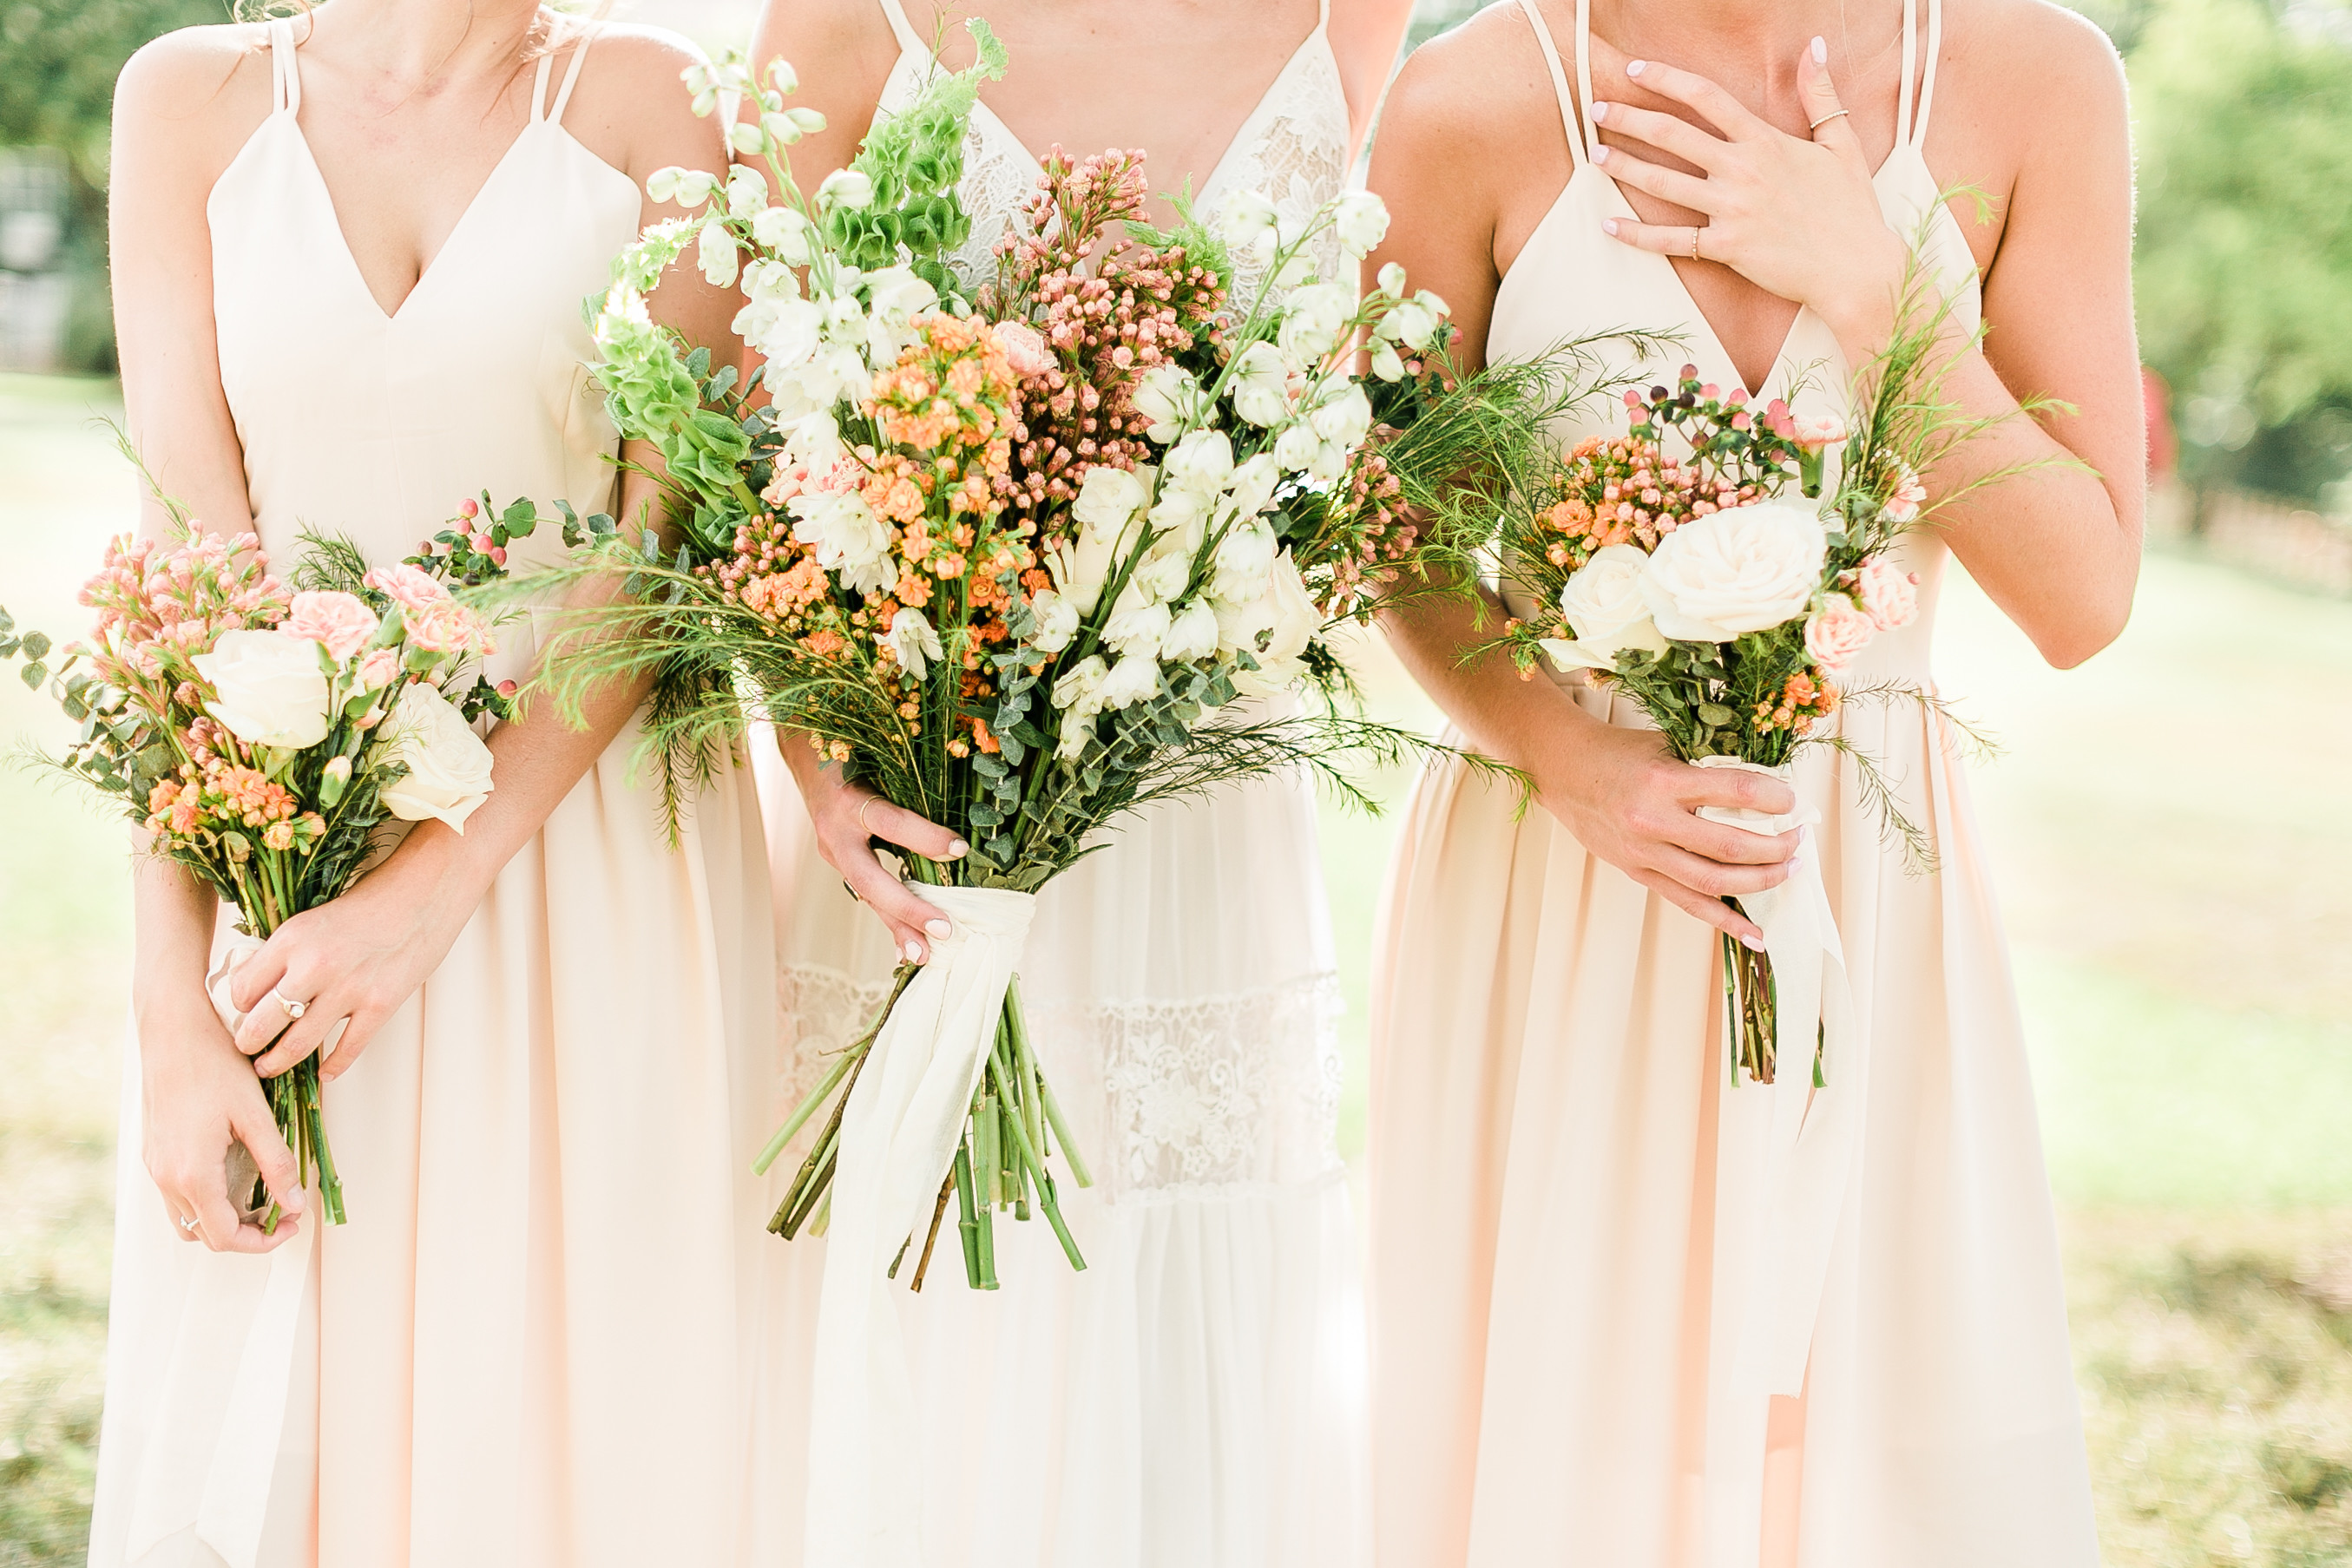 Top-5 Tips for Bridesmaid's Dress Shopping